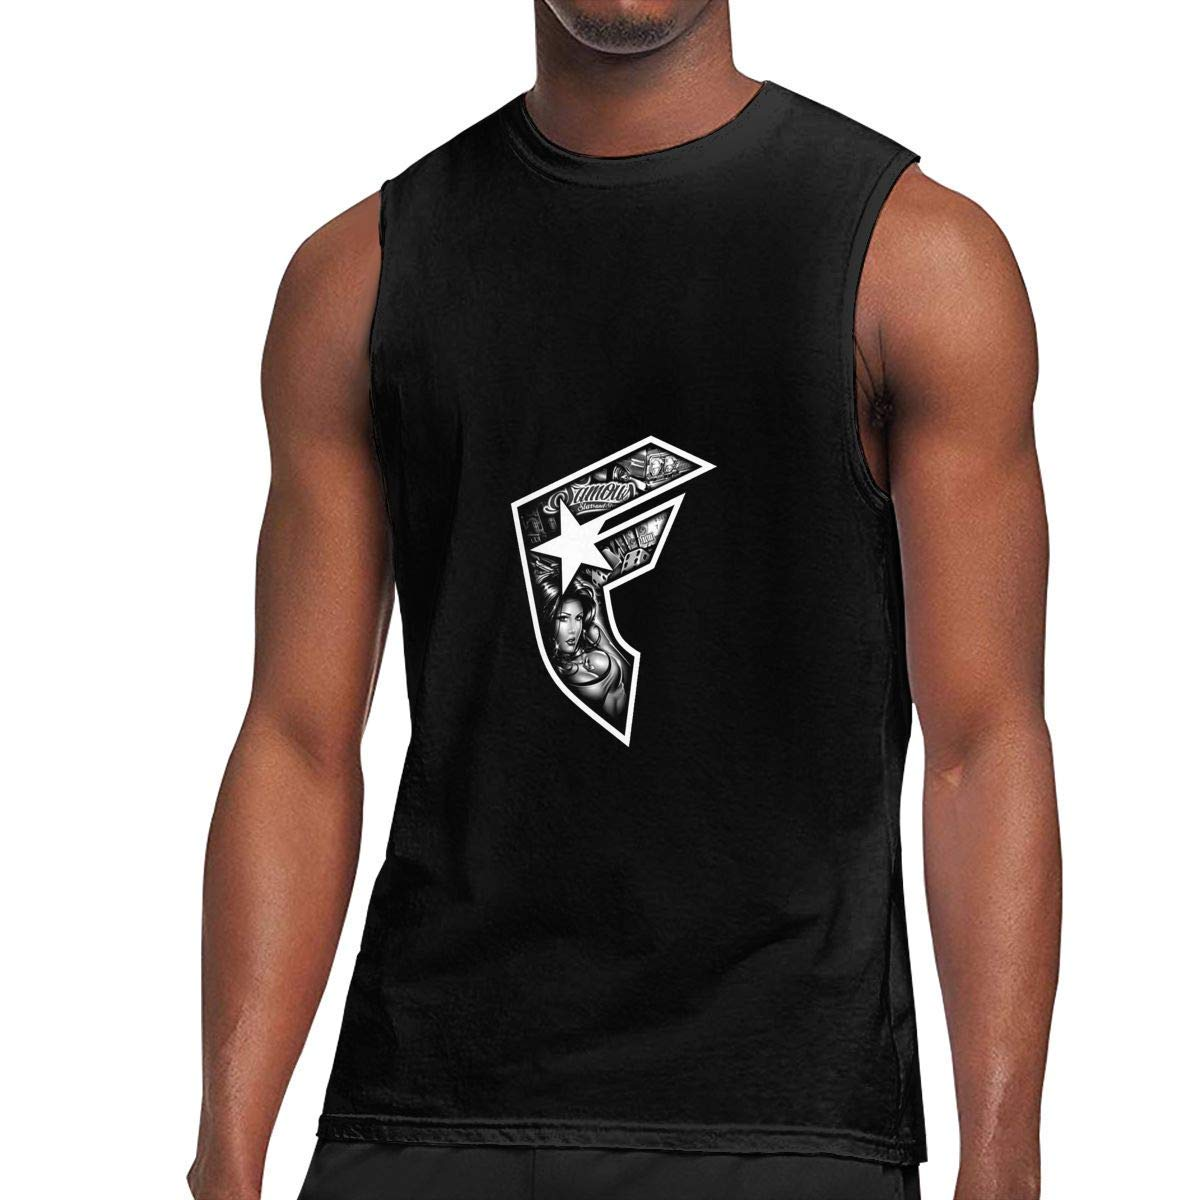 S Sleeveless T Shirts Famous Stars And Straps Workout Tank Tops Gym Bodybuilding Tshirts Black